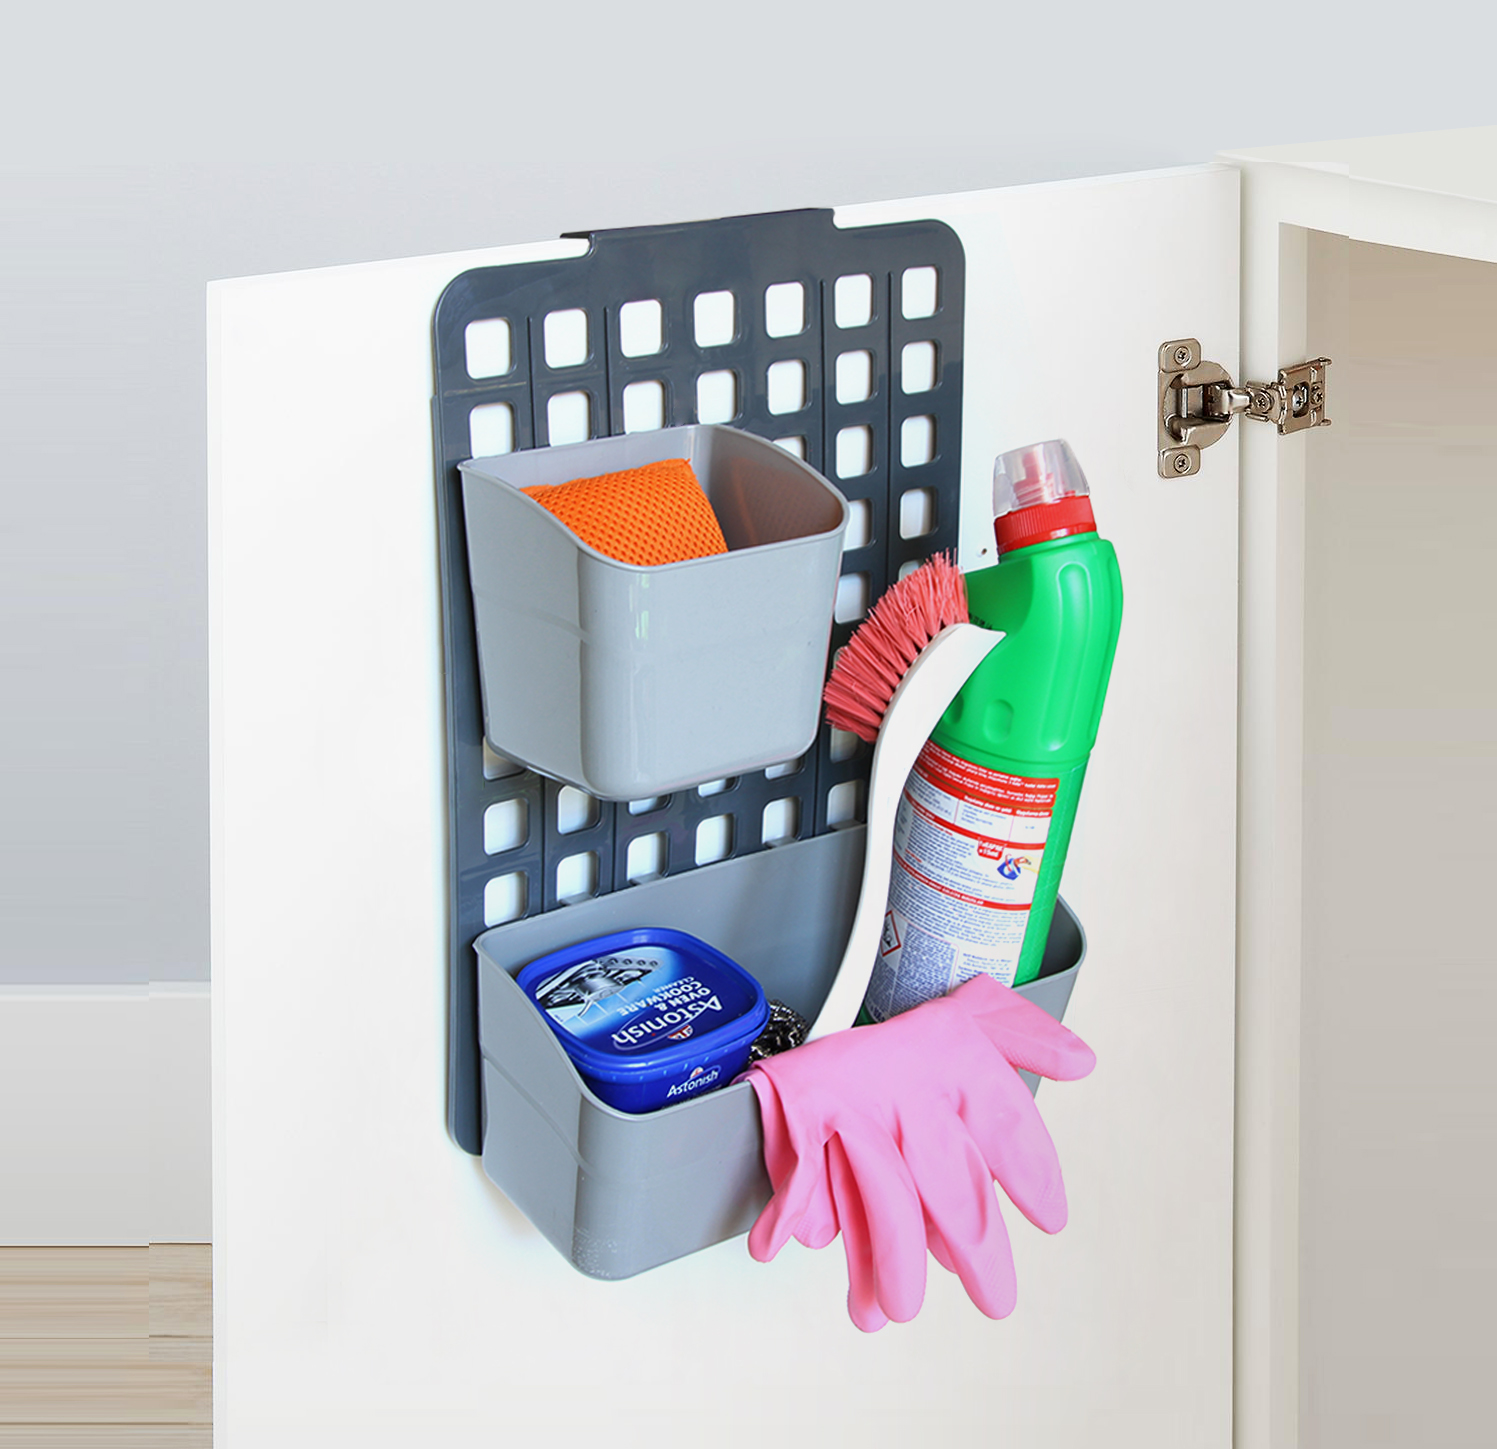 Adjustable Organizer Basket - 1 Large + 1 Small